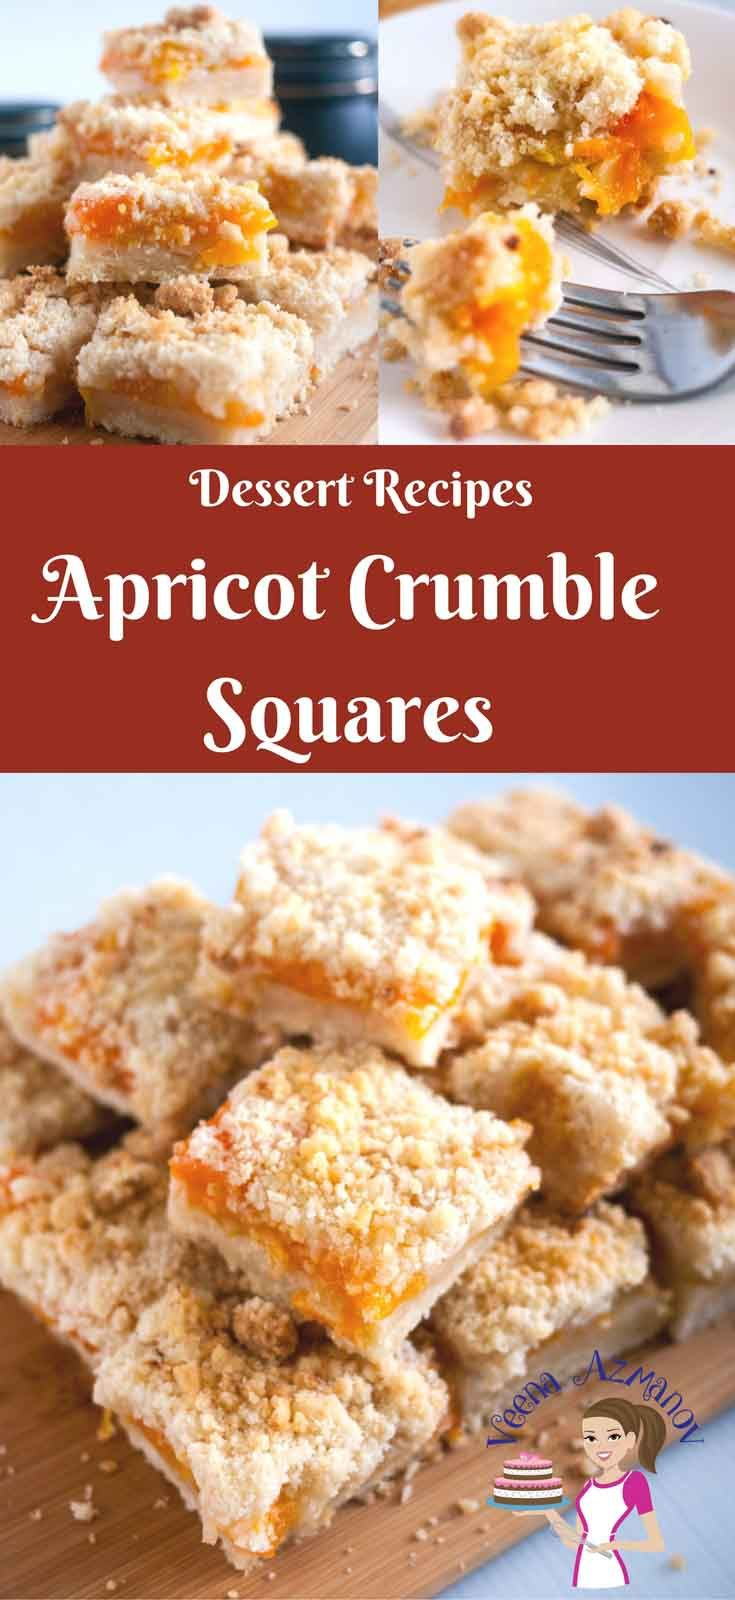 These, Apricot Crumble Squares are, a, great-twist, on, the, Classic-Fruit-Crumble-tart! Simple; and, easy-to-make; whether, you, use fresh, canned, or, frozen apricots! This, is, definitely, a, crowd-pleaser; and, a, great tea-time, snack; via: @veenaazmanov Apricot Crumble Recipe; Crumble Recipe; Apricot Crumble; Easy Apricot Crumble; Apricot Dessert; or, 'How-to Apricot Dessert.